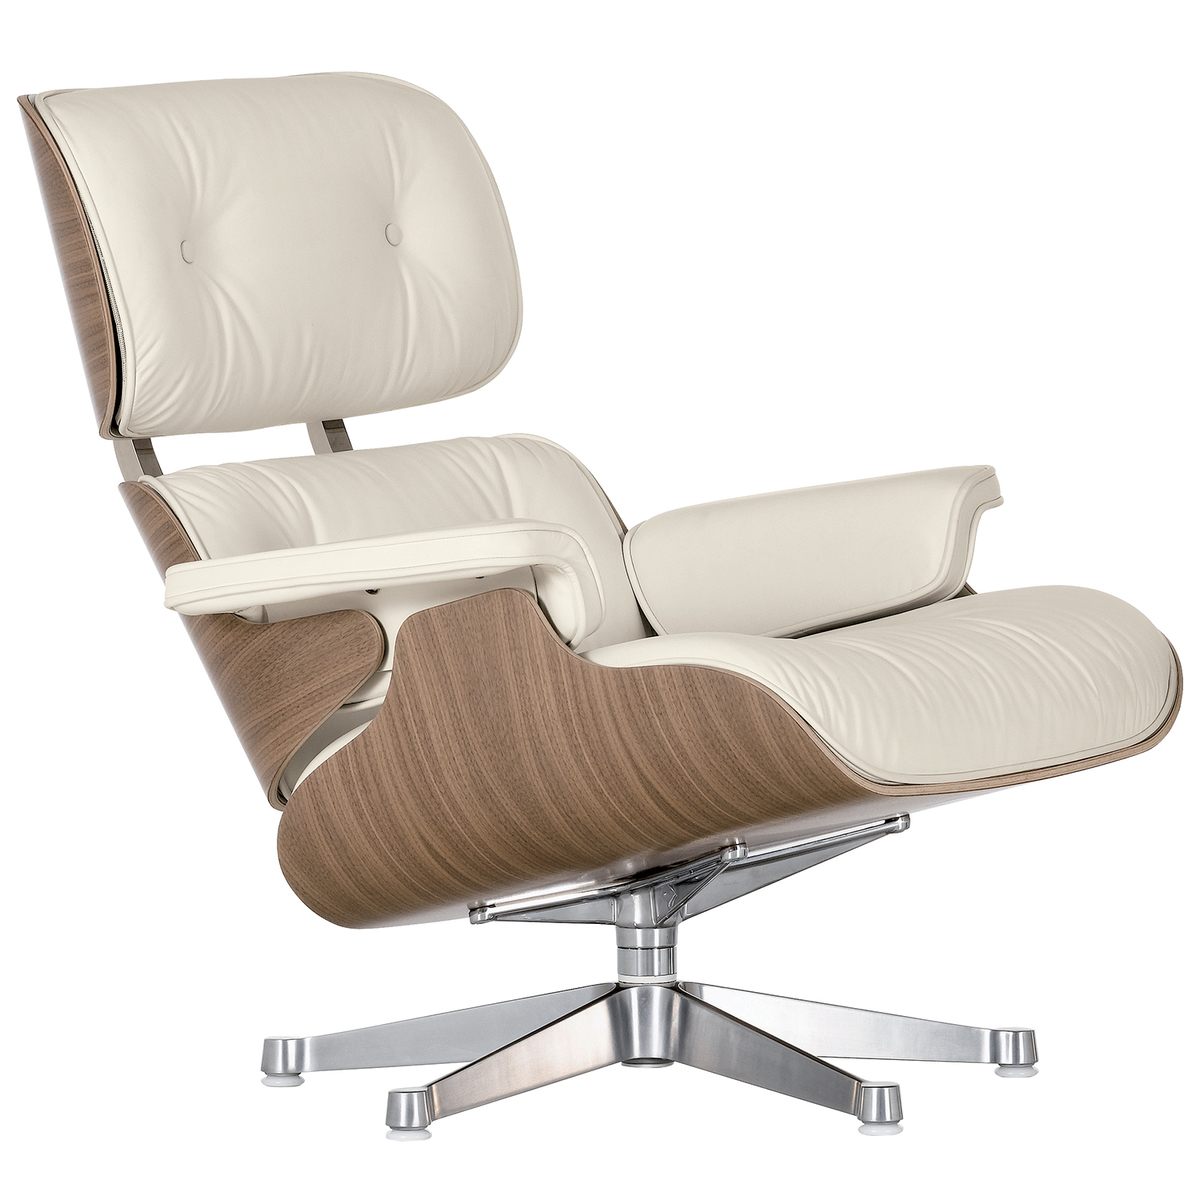 Astounding Eames Lounge Chair Classic Size White Walnut White Leather Machost Co Dining Chair Design Ideas Machostcouk